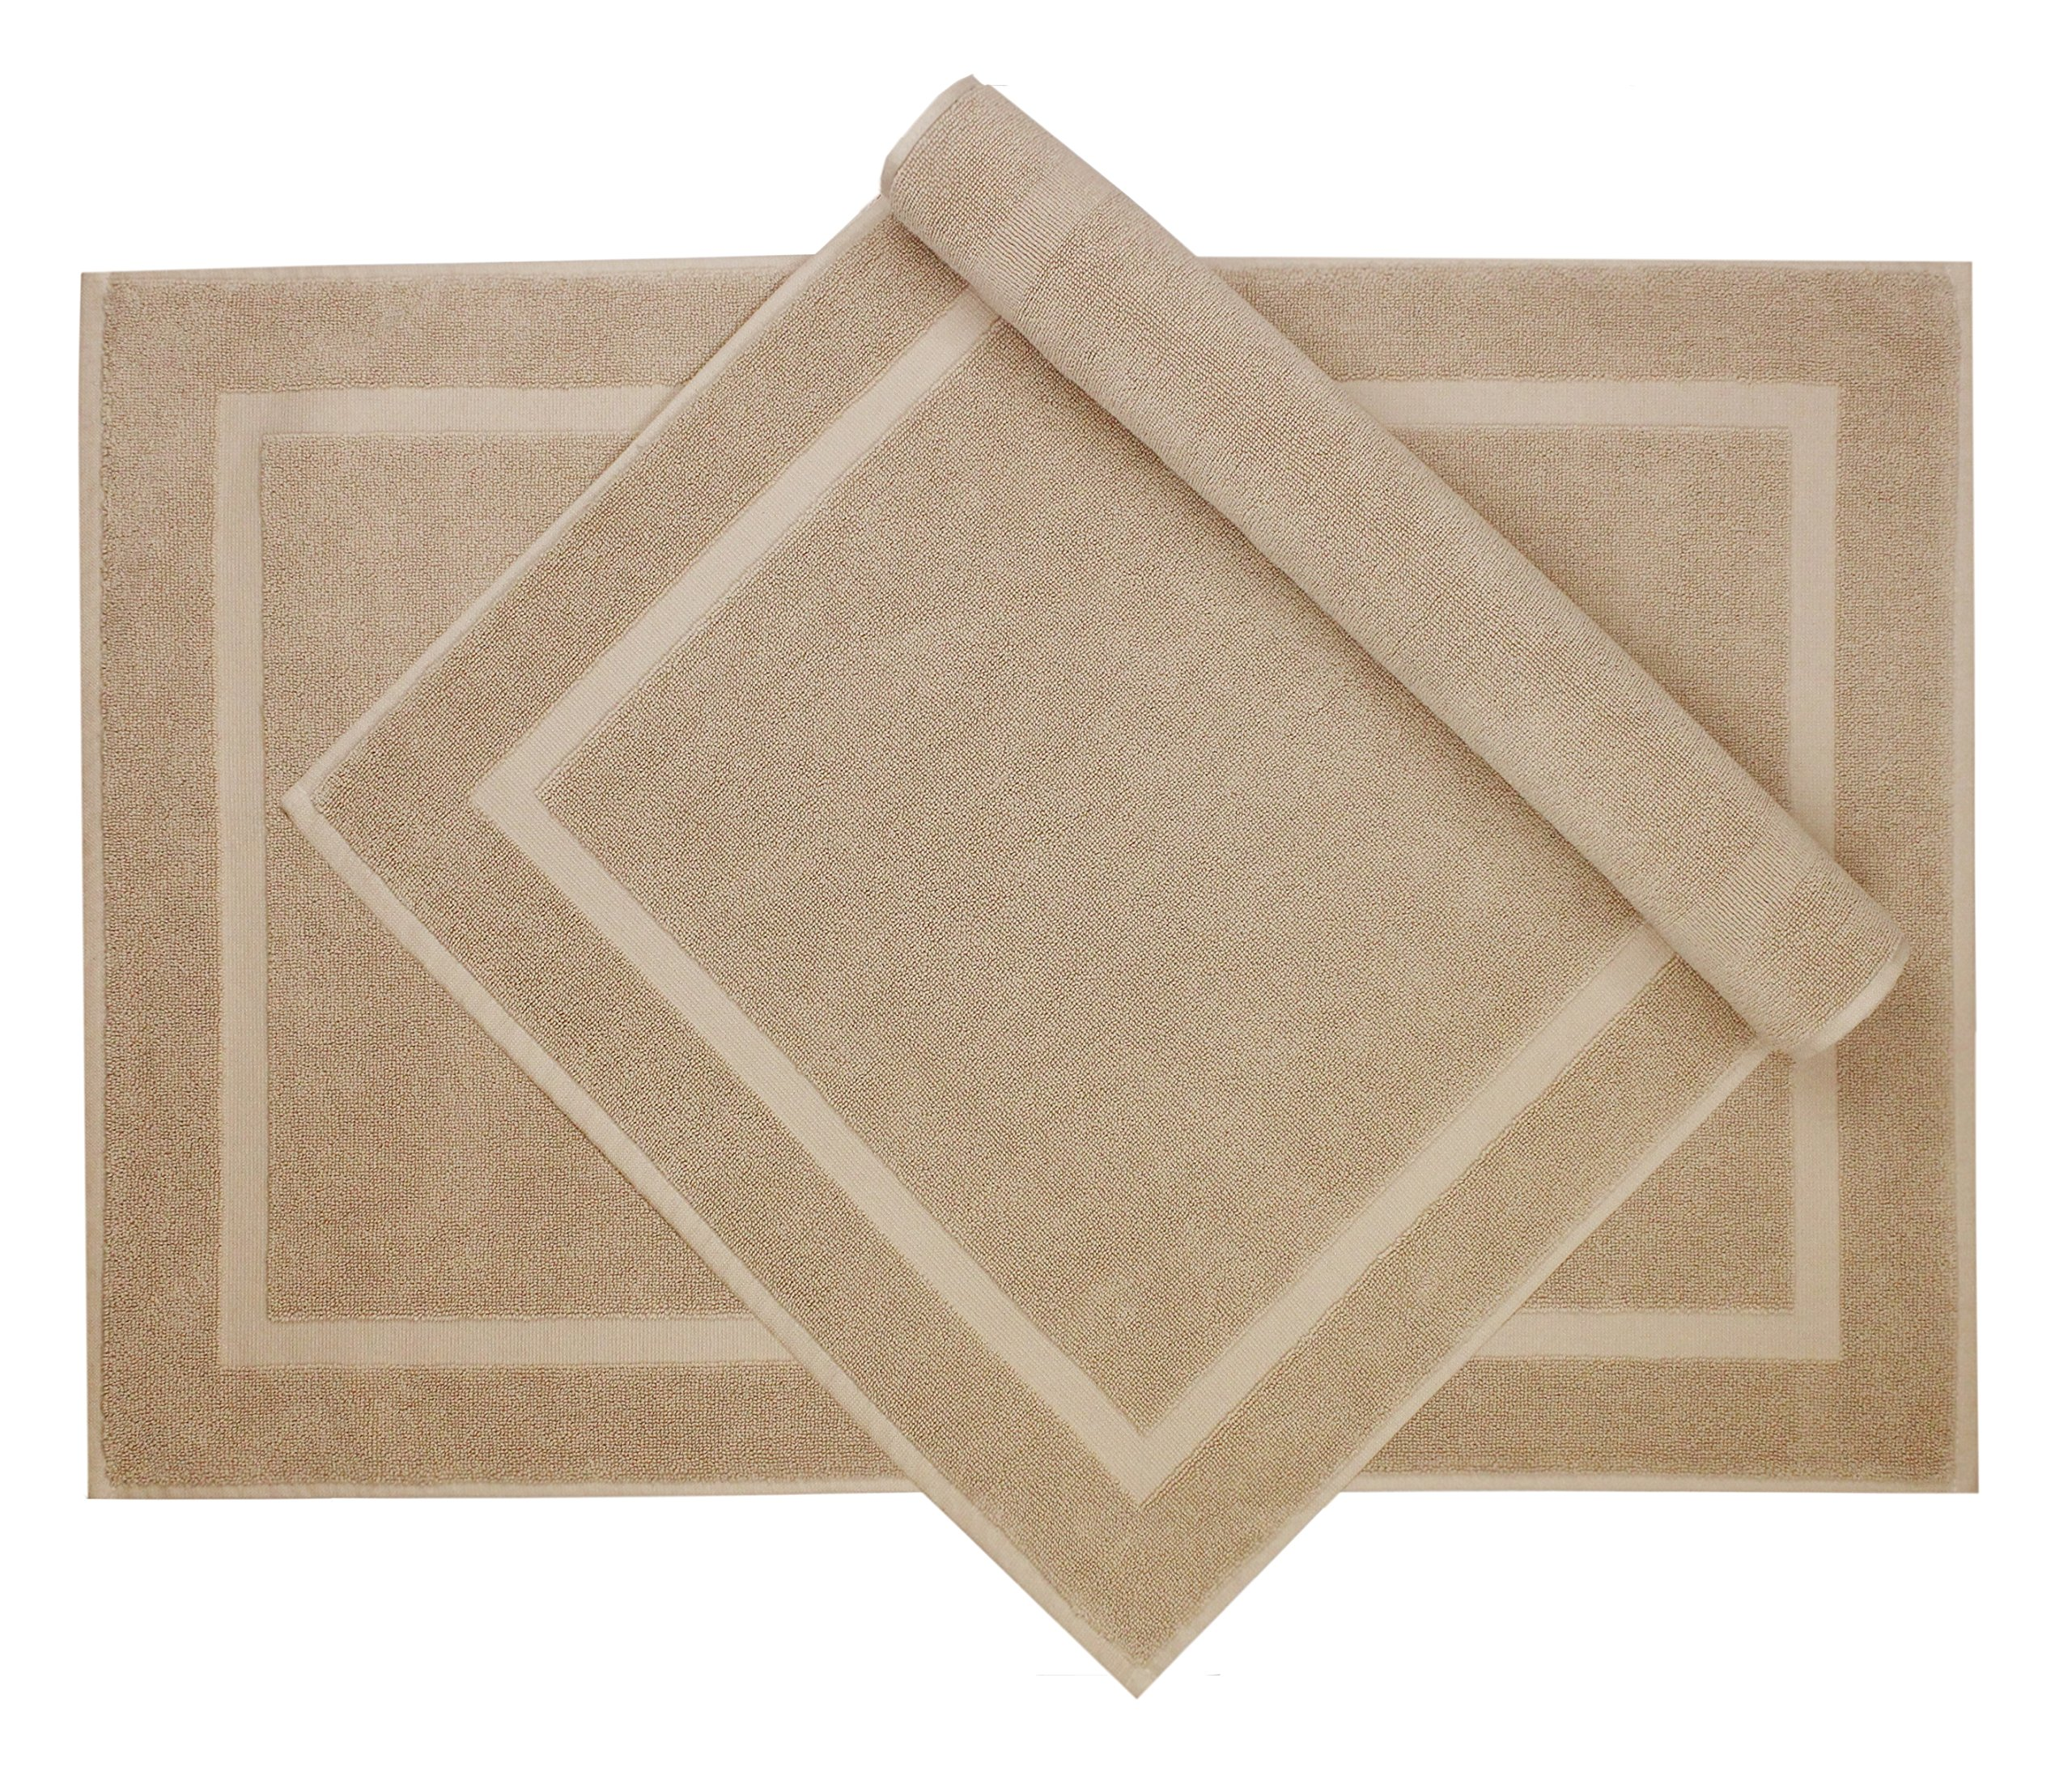 Cotton Craft - 2 Pack Bath Mat - Linen - 100% Ringspun Cotton Tub Mat 21x34 - Oversized 21x34 Heavy Weight 1000 Grams - 2 Ply Construction - High Absorbent - Soft Underfoot Easy Care Machine Wash